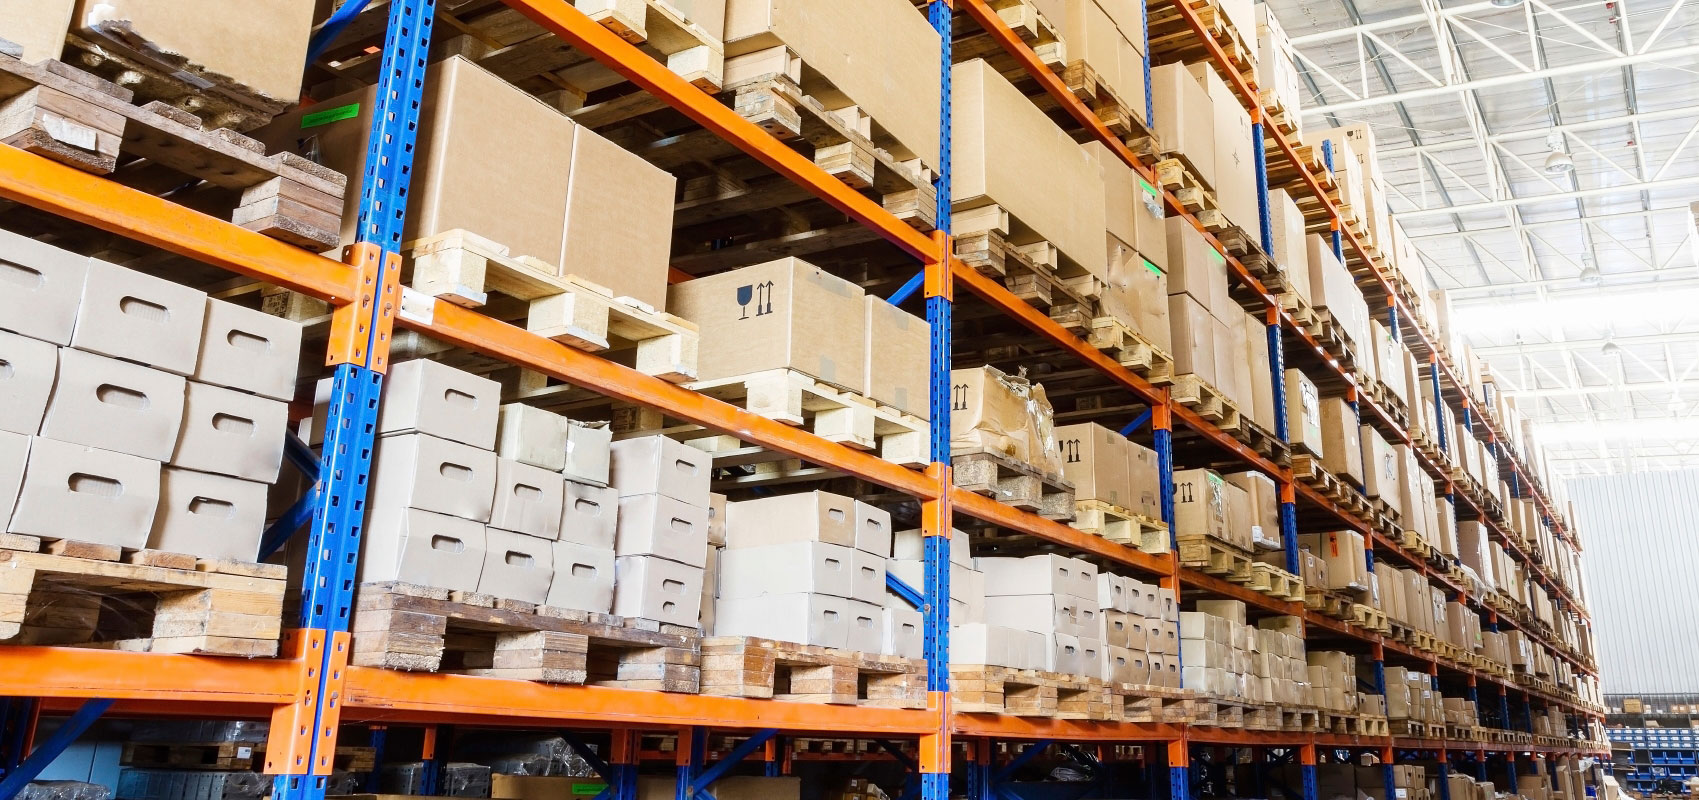 RFID solves many logistical issues